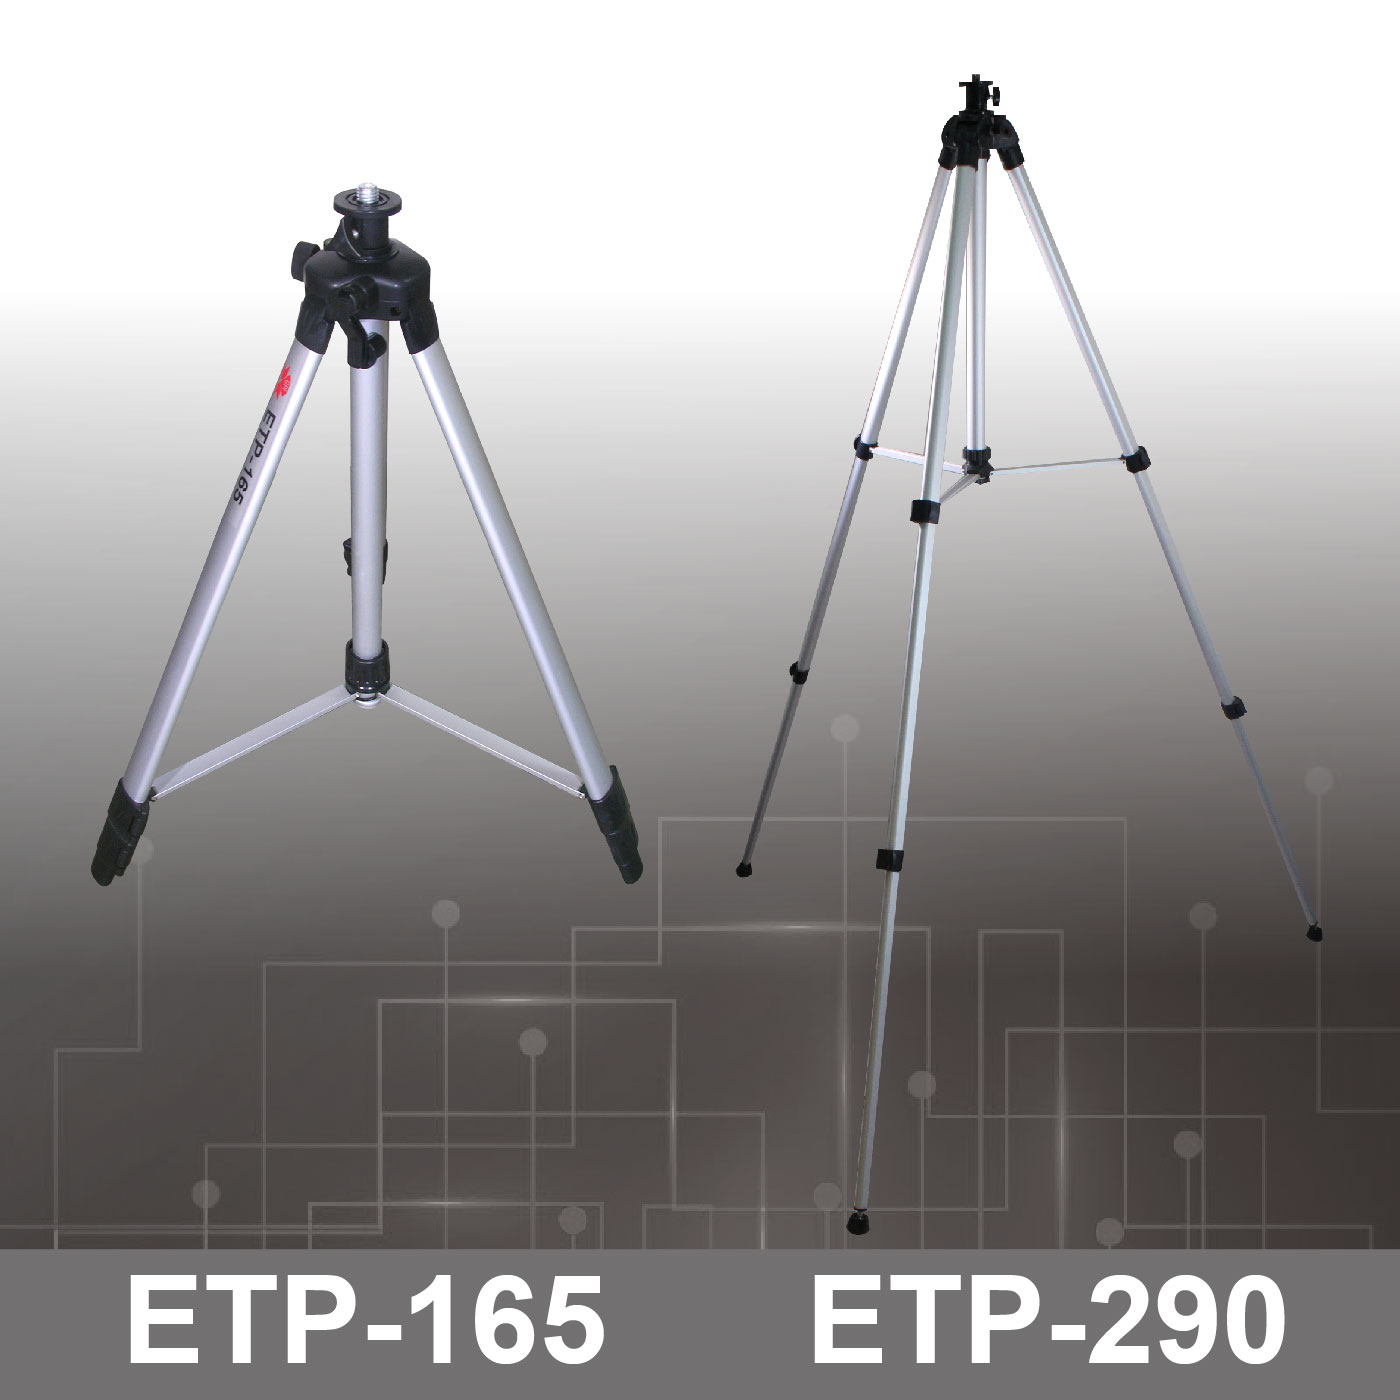 Detector/Tripod/Wall bracket/Charger